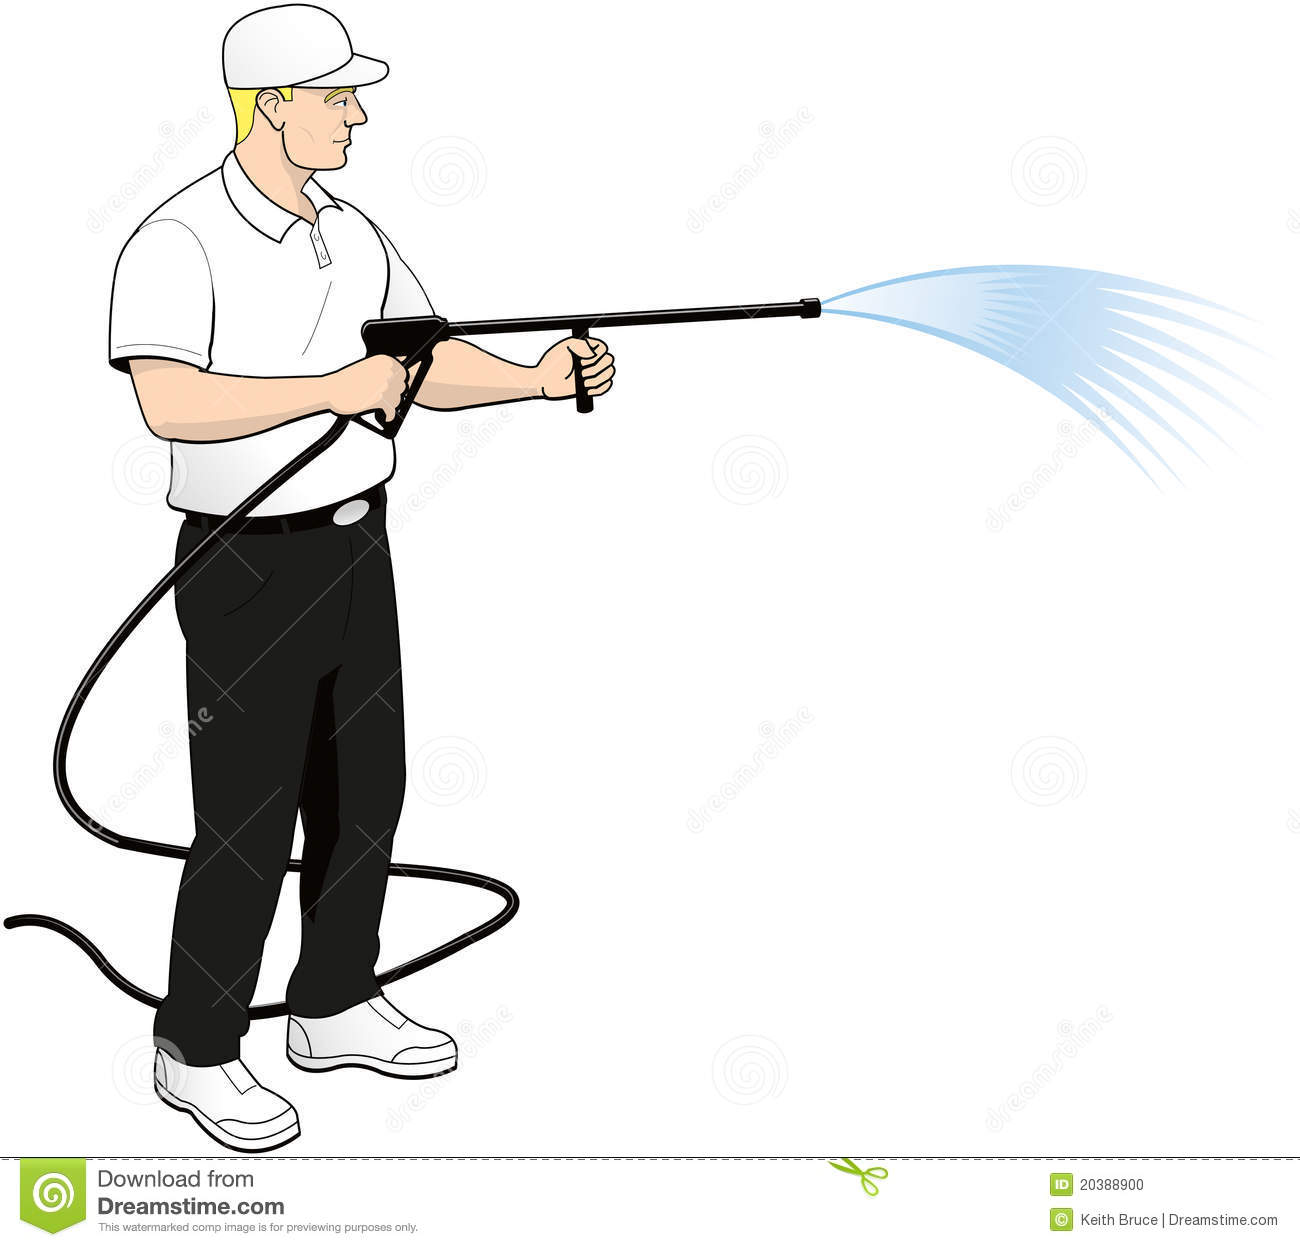 pressure power soft washing clip art stock illustration rh dreamstime com pressure washing wand clip art pressure cleaning clip art